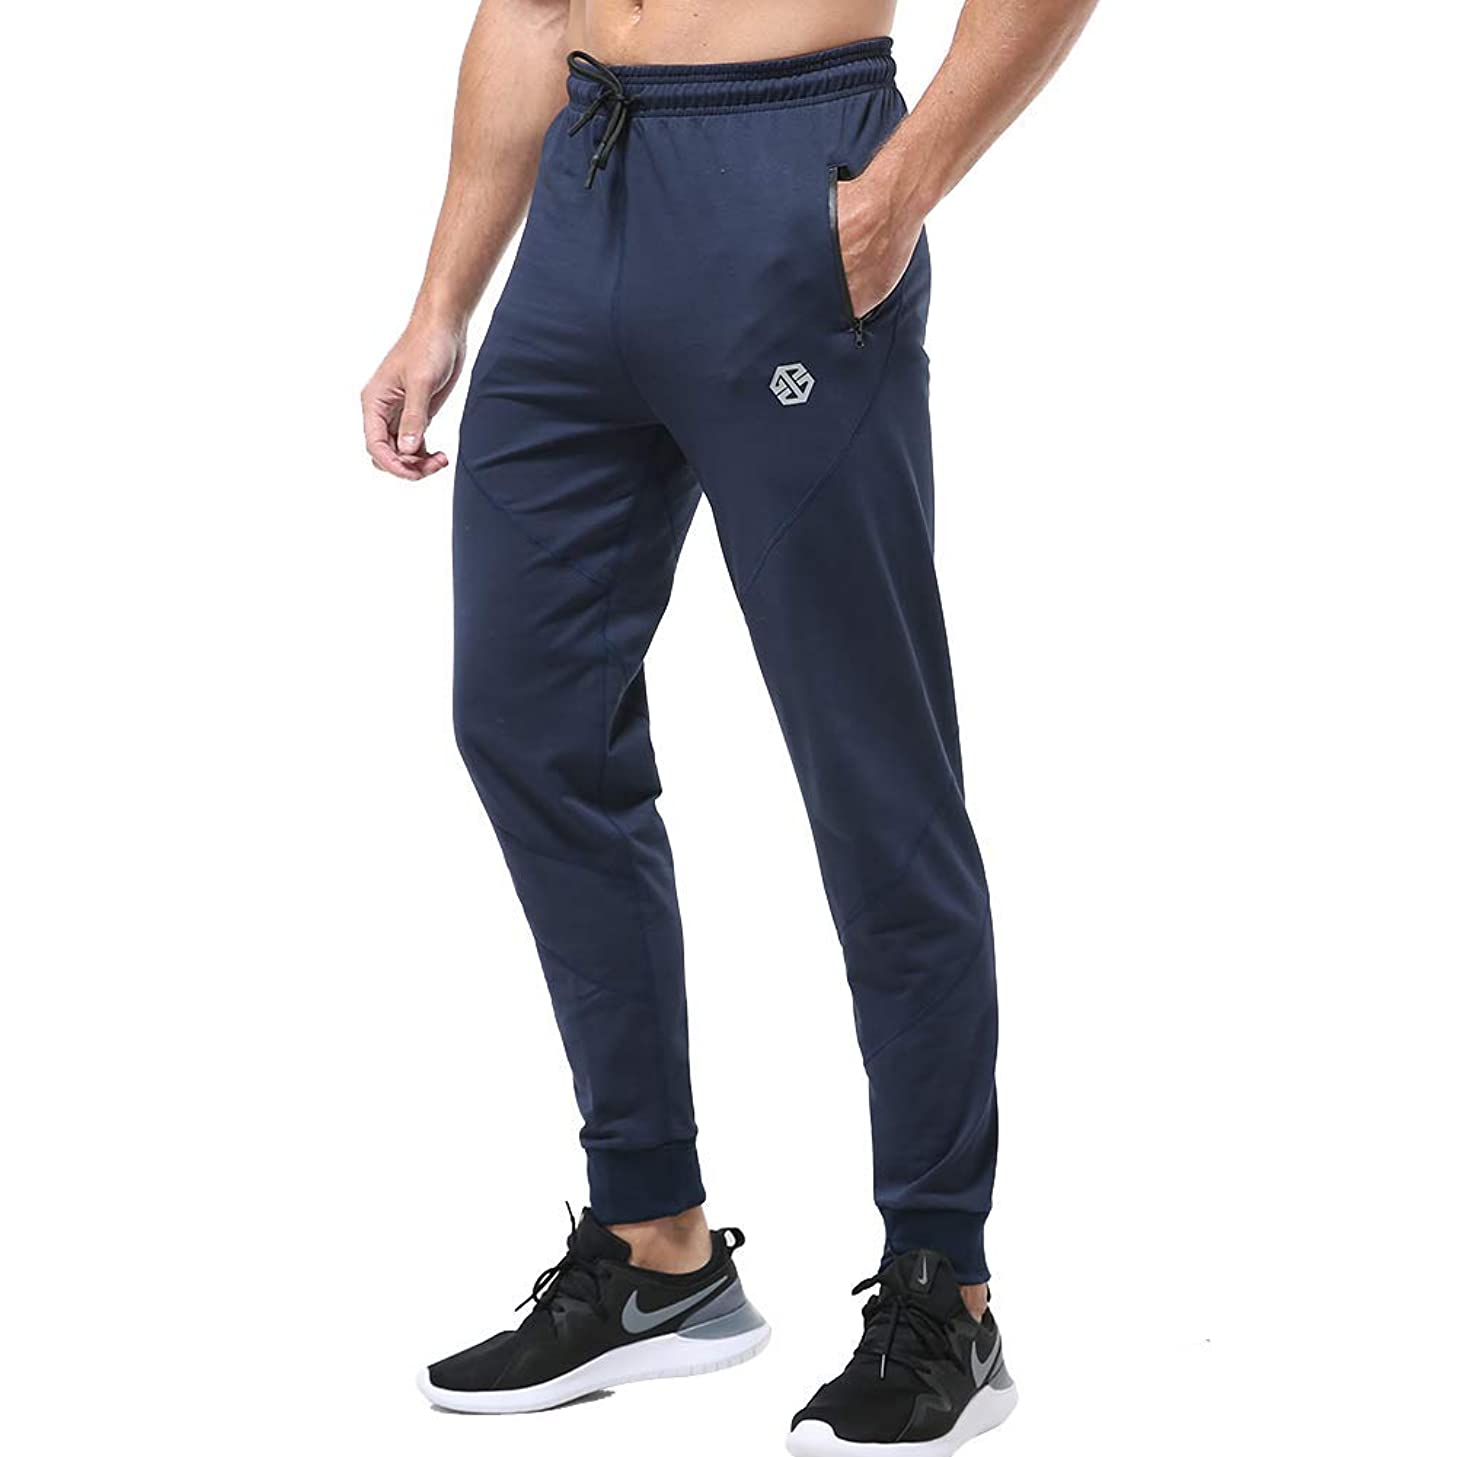 Gerlobal Men's Joggers Sweatpants Workout Running Gym Pants with Zipper Pockets